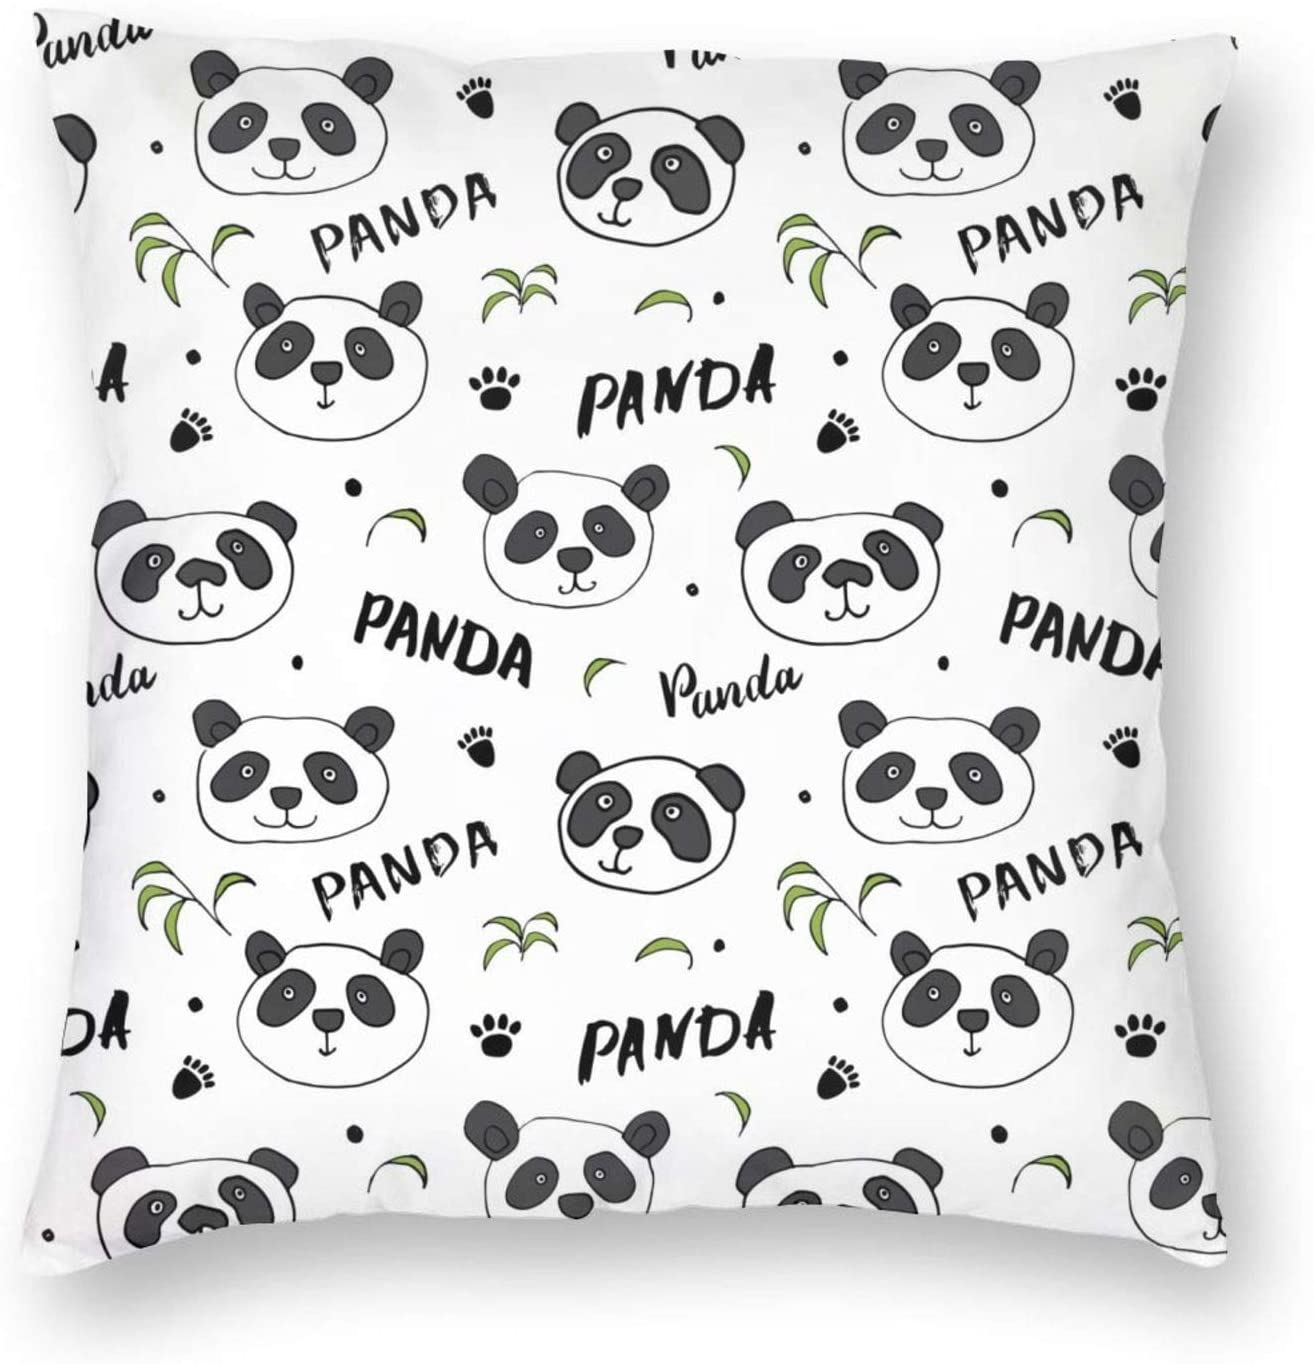 antkondnm Cute Panda Bear Throw Pillow Covers Decorative Pillow Cases Home Decor Square 18x18 Inches Pillowcases